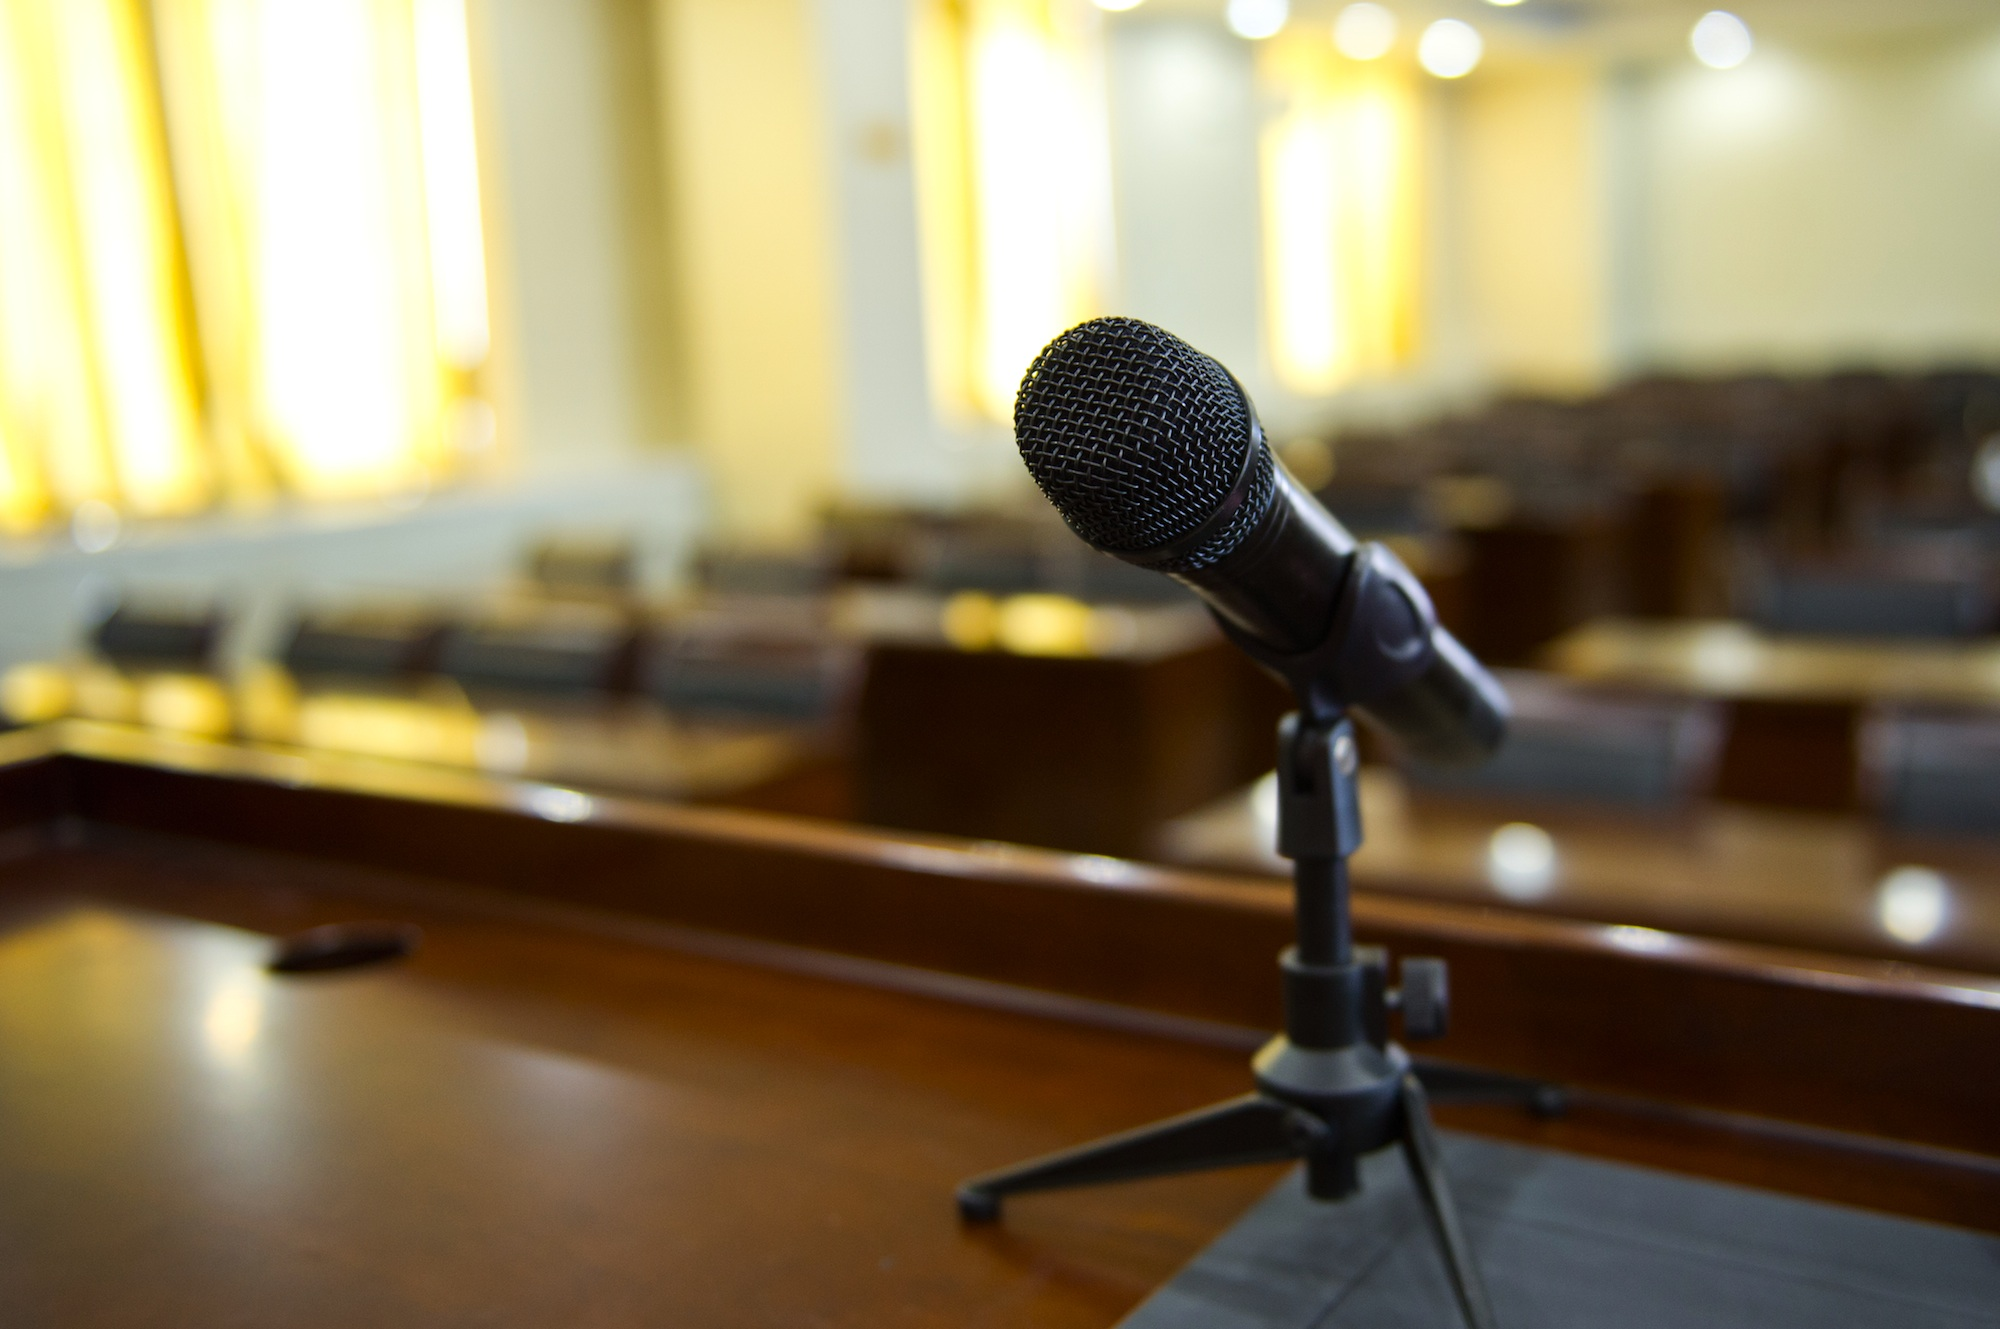 How to Cure Stage Fright: The Science Behind Public Speaking